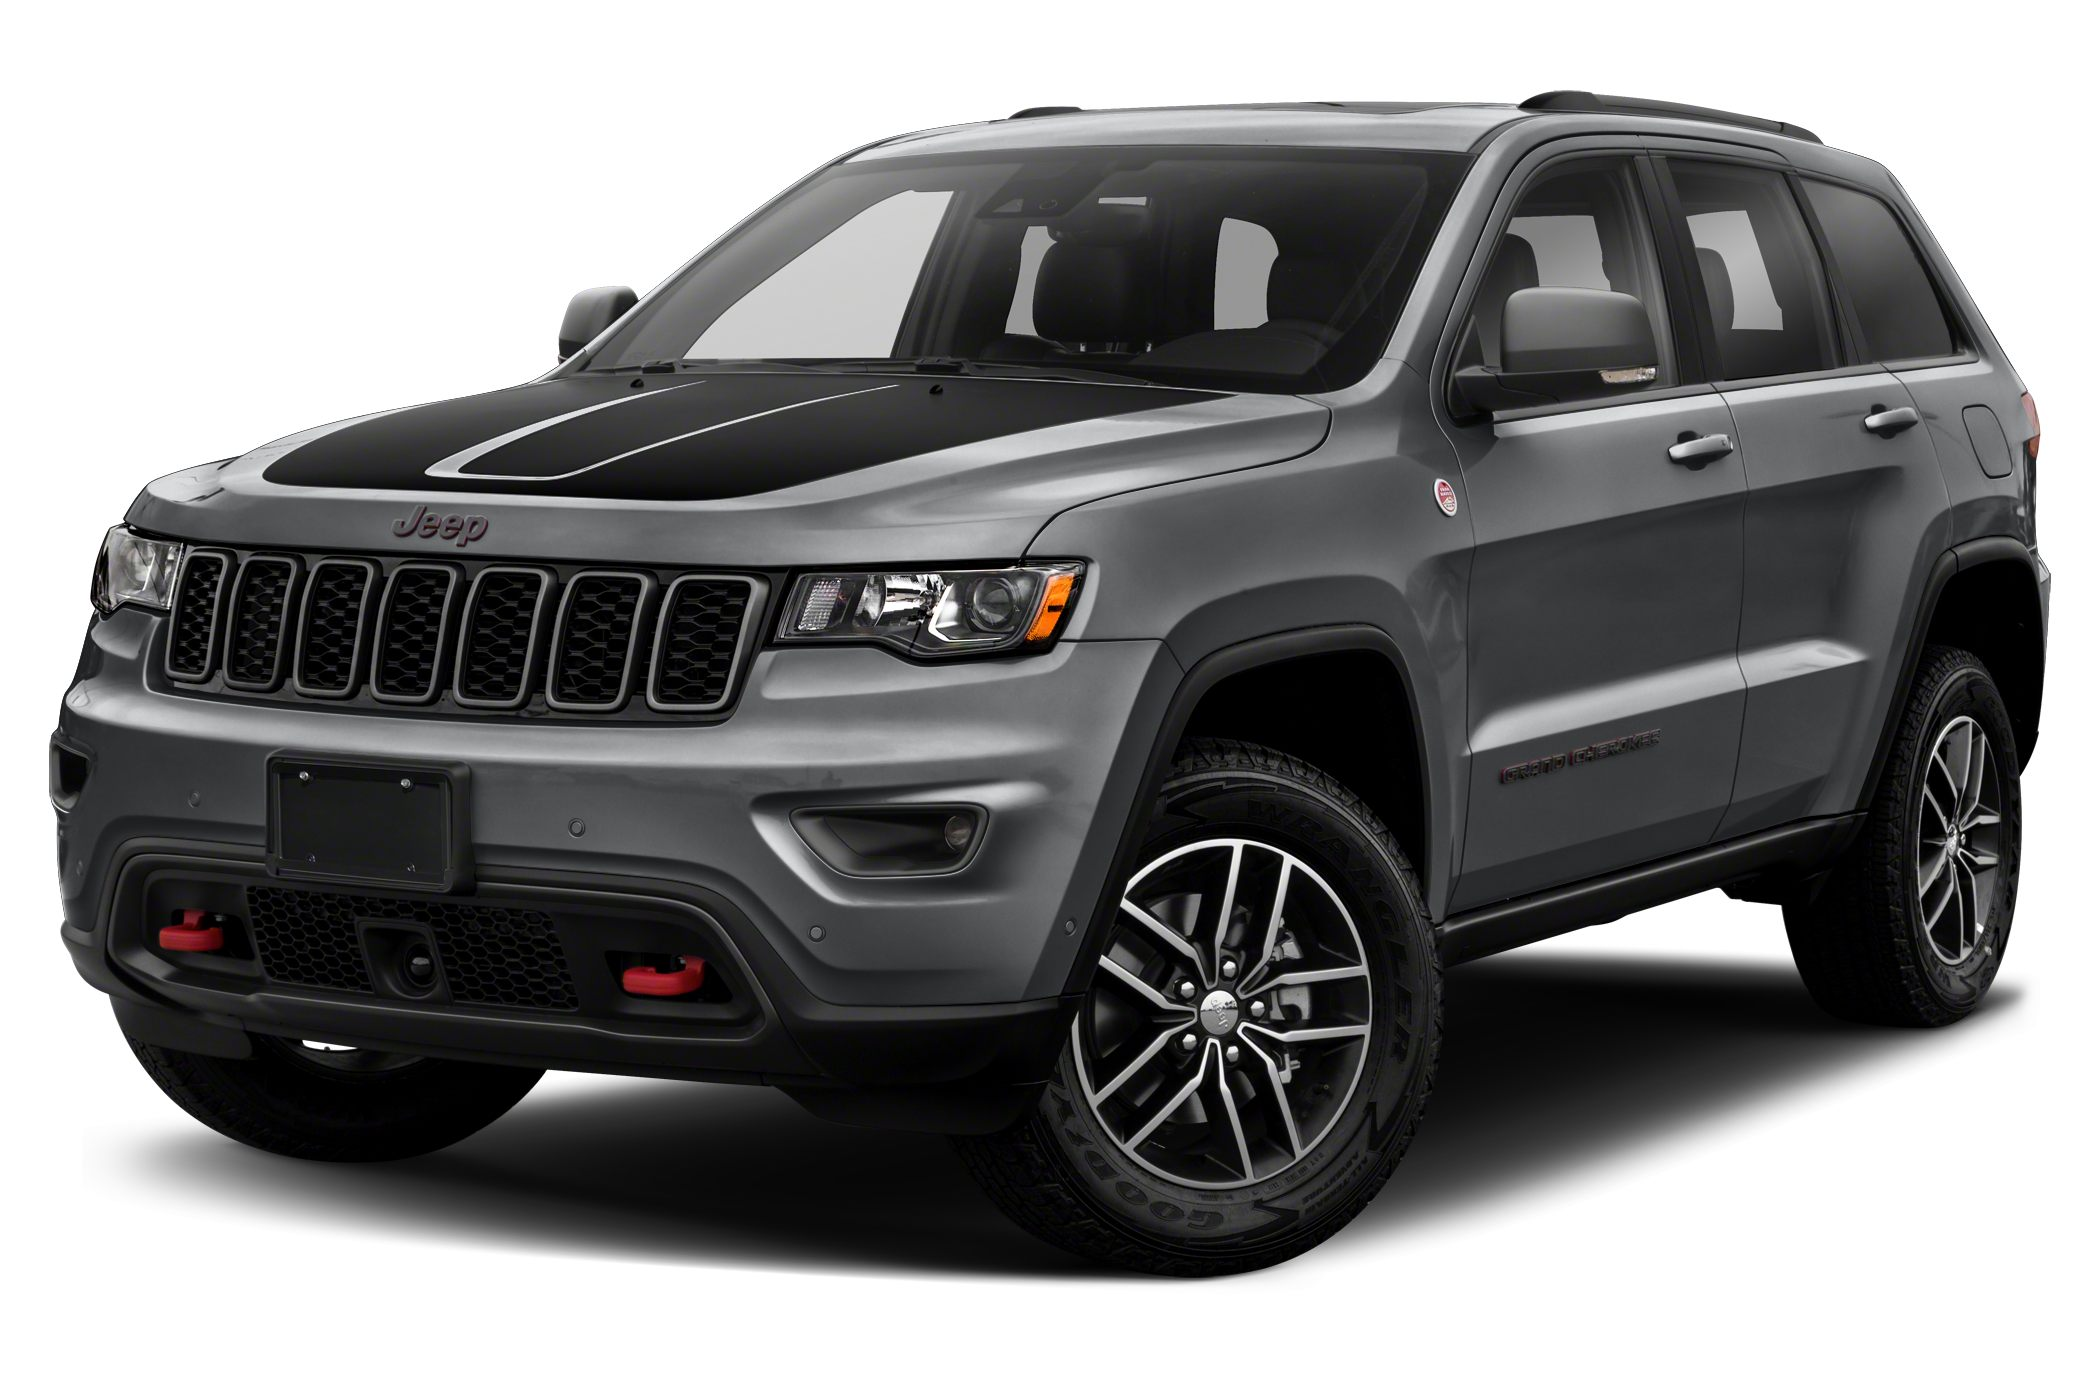 Jeep Grand Cherokee Trailhawk Black